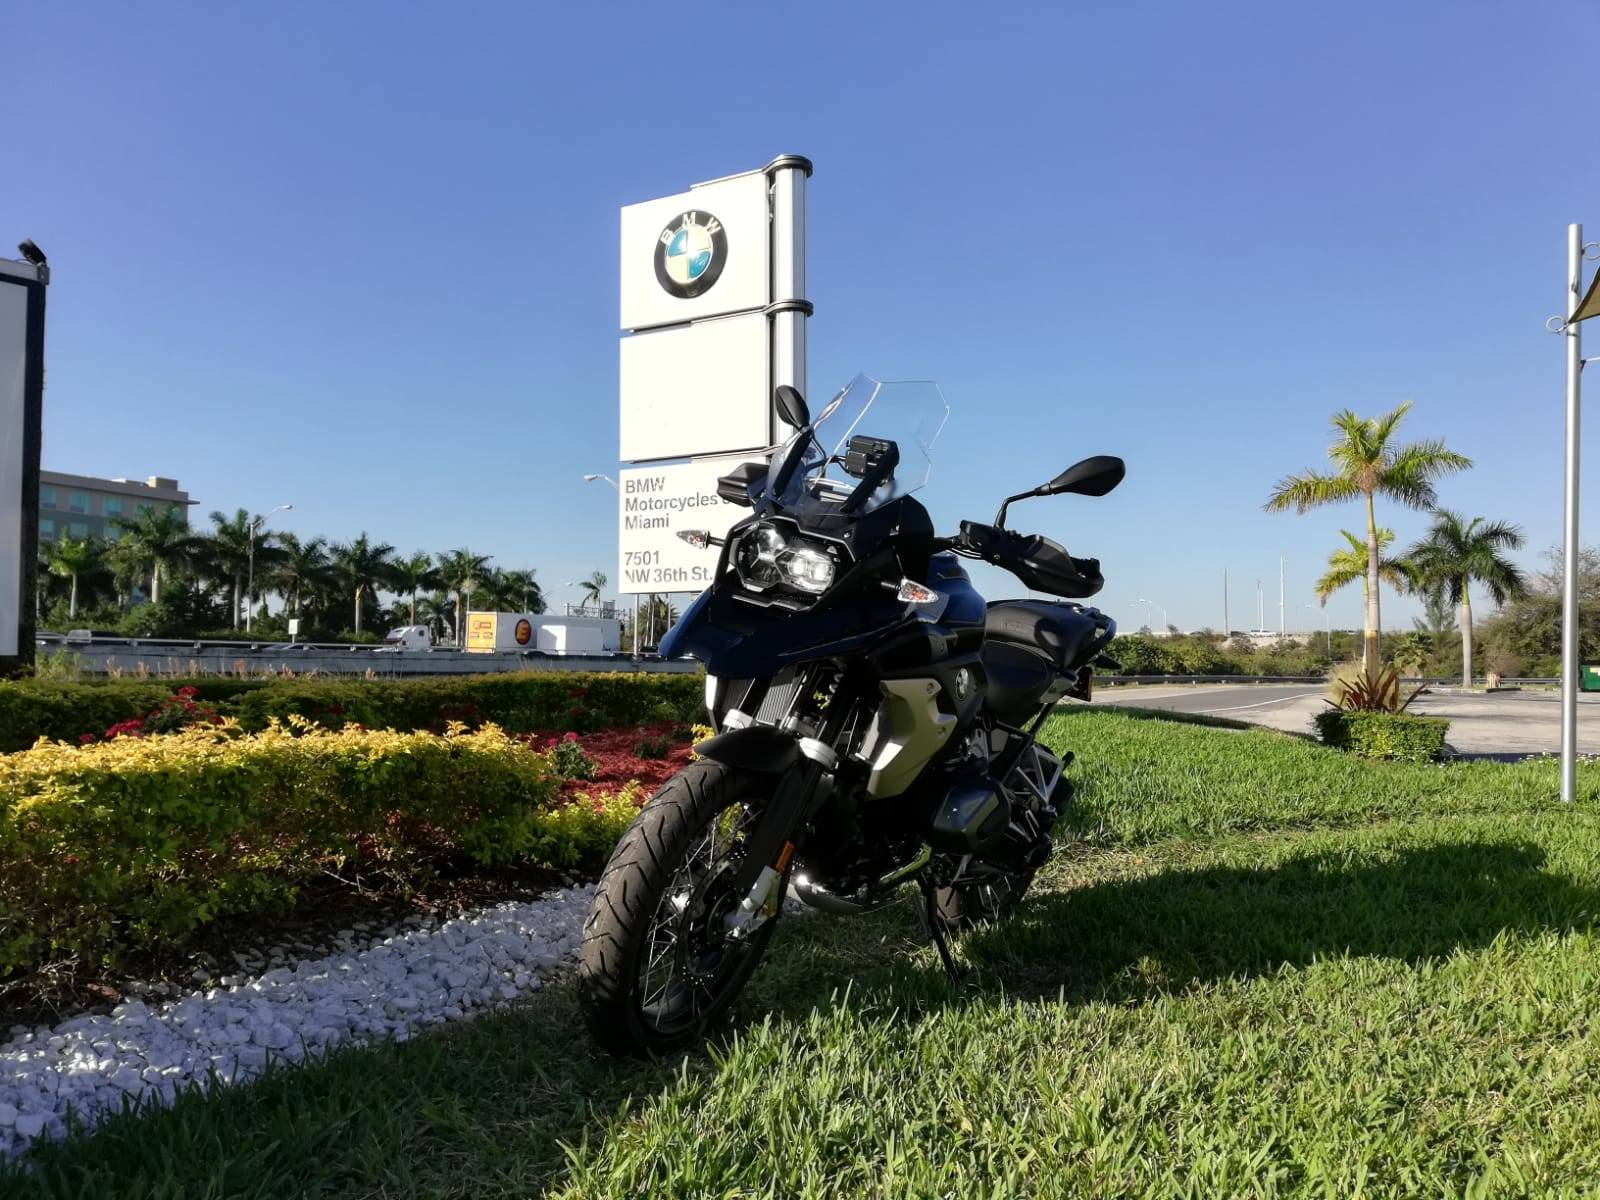 New 2019 BMW R 1250 GS for sale, BMW R 1250GS for sale, BMW Motorcycle GS, new BMW GS, Spirit of GS, BMW Motorcycles of Miami, Motorcycles of Miami, Motorcycles Miami, New Motorcycles, Used Motorcycles, pre-owned. #BMWMotorcyclesOfMiami #MotorcyclesOfMiami. - Photo 2